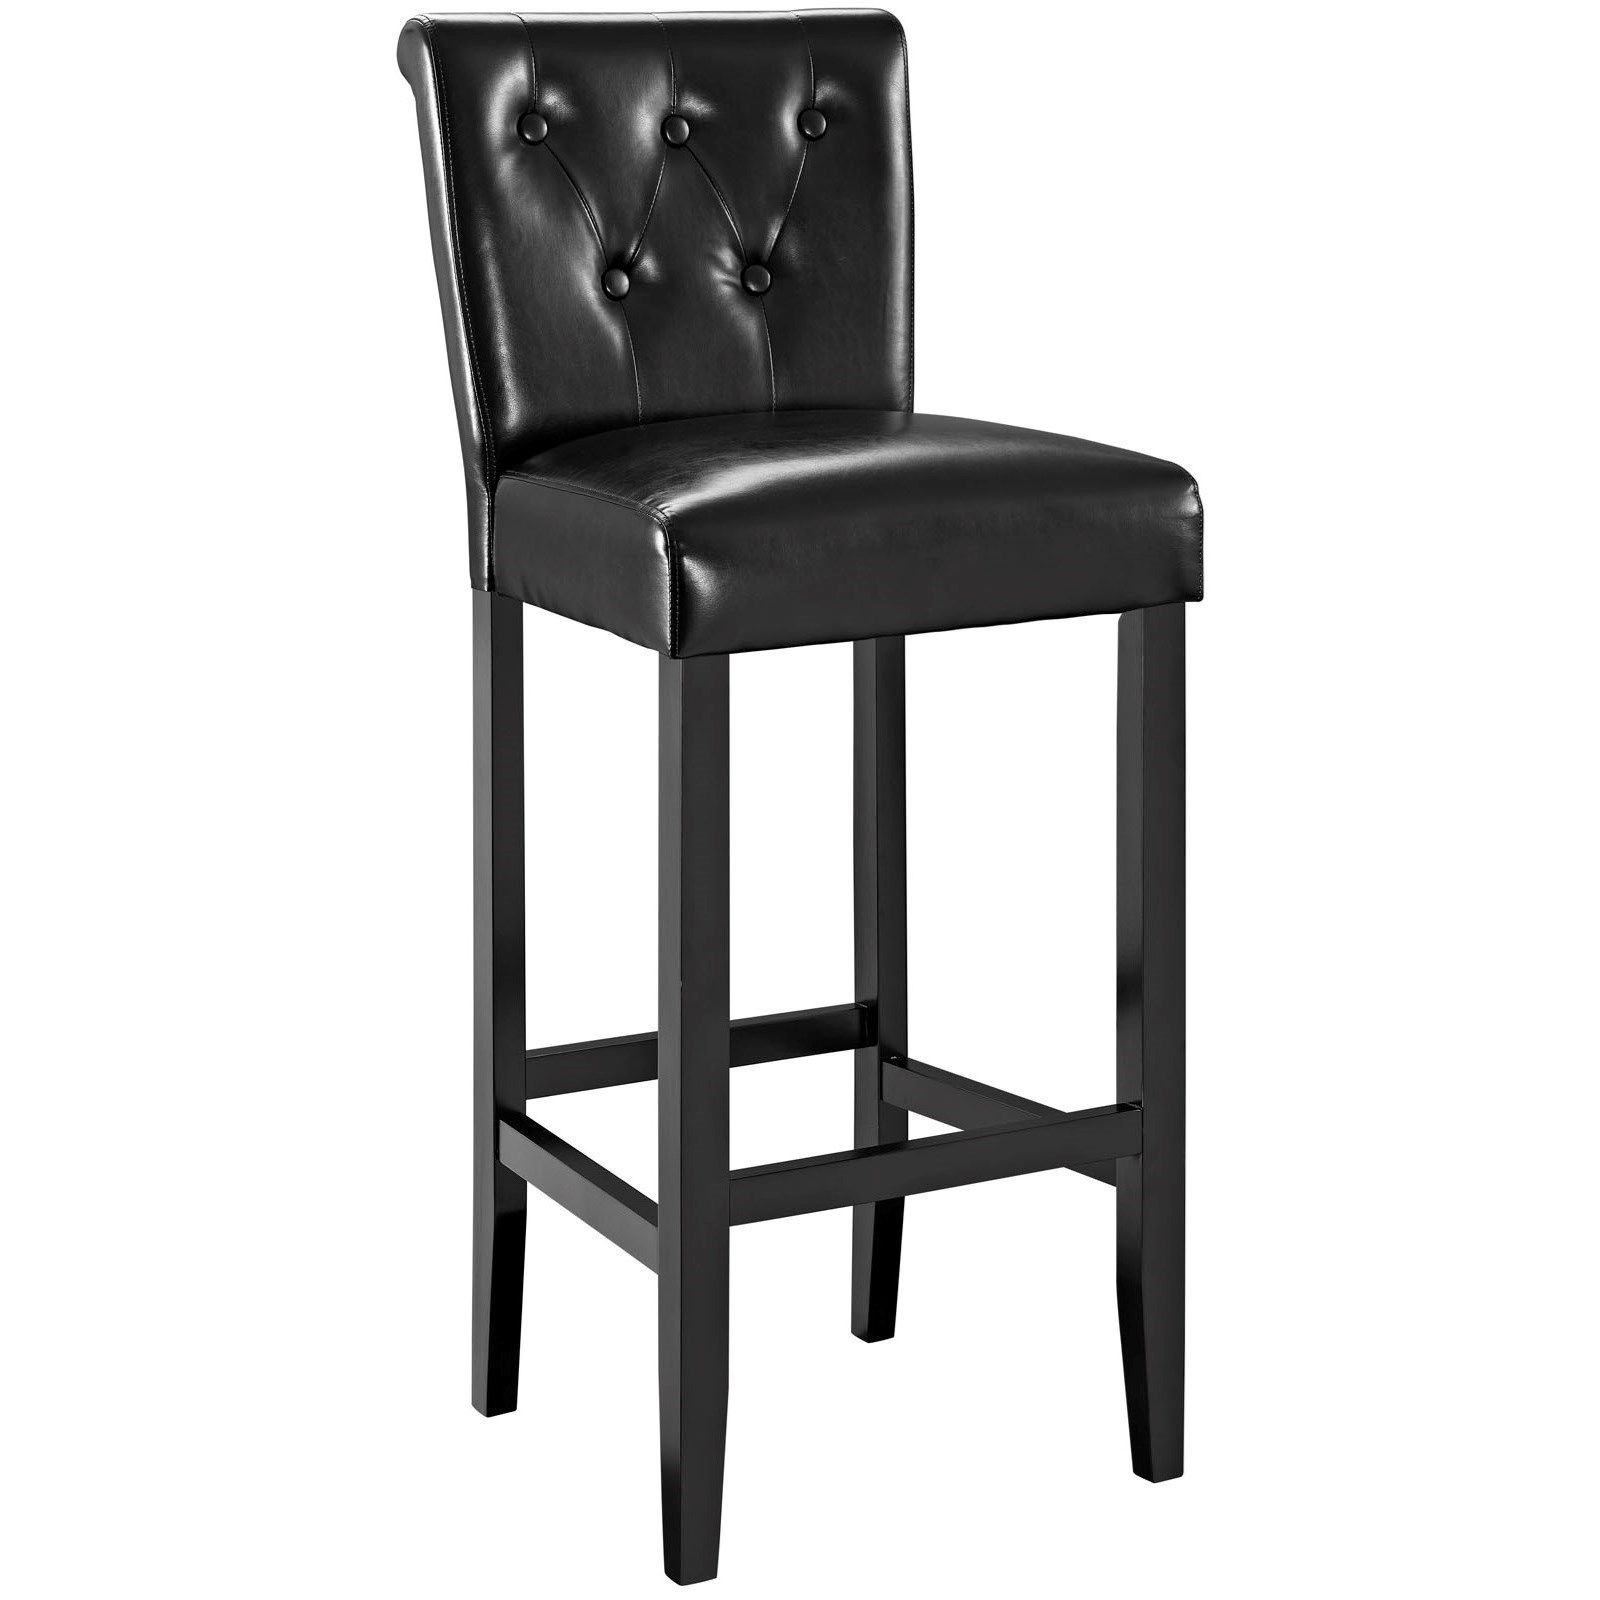 Upholstered Bar Chairs Tender Upholstered Bar Stool With Button Tufting By Modway At Value City Furniture